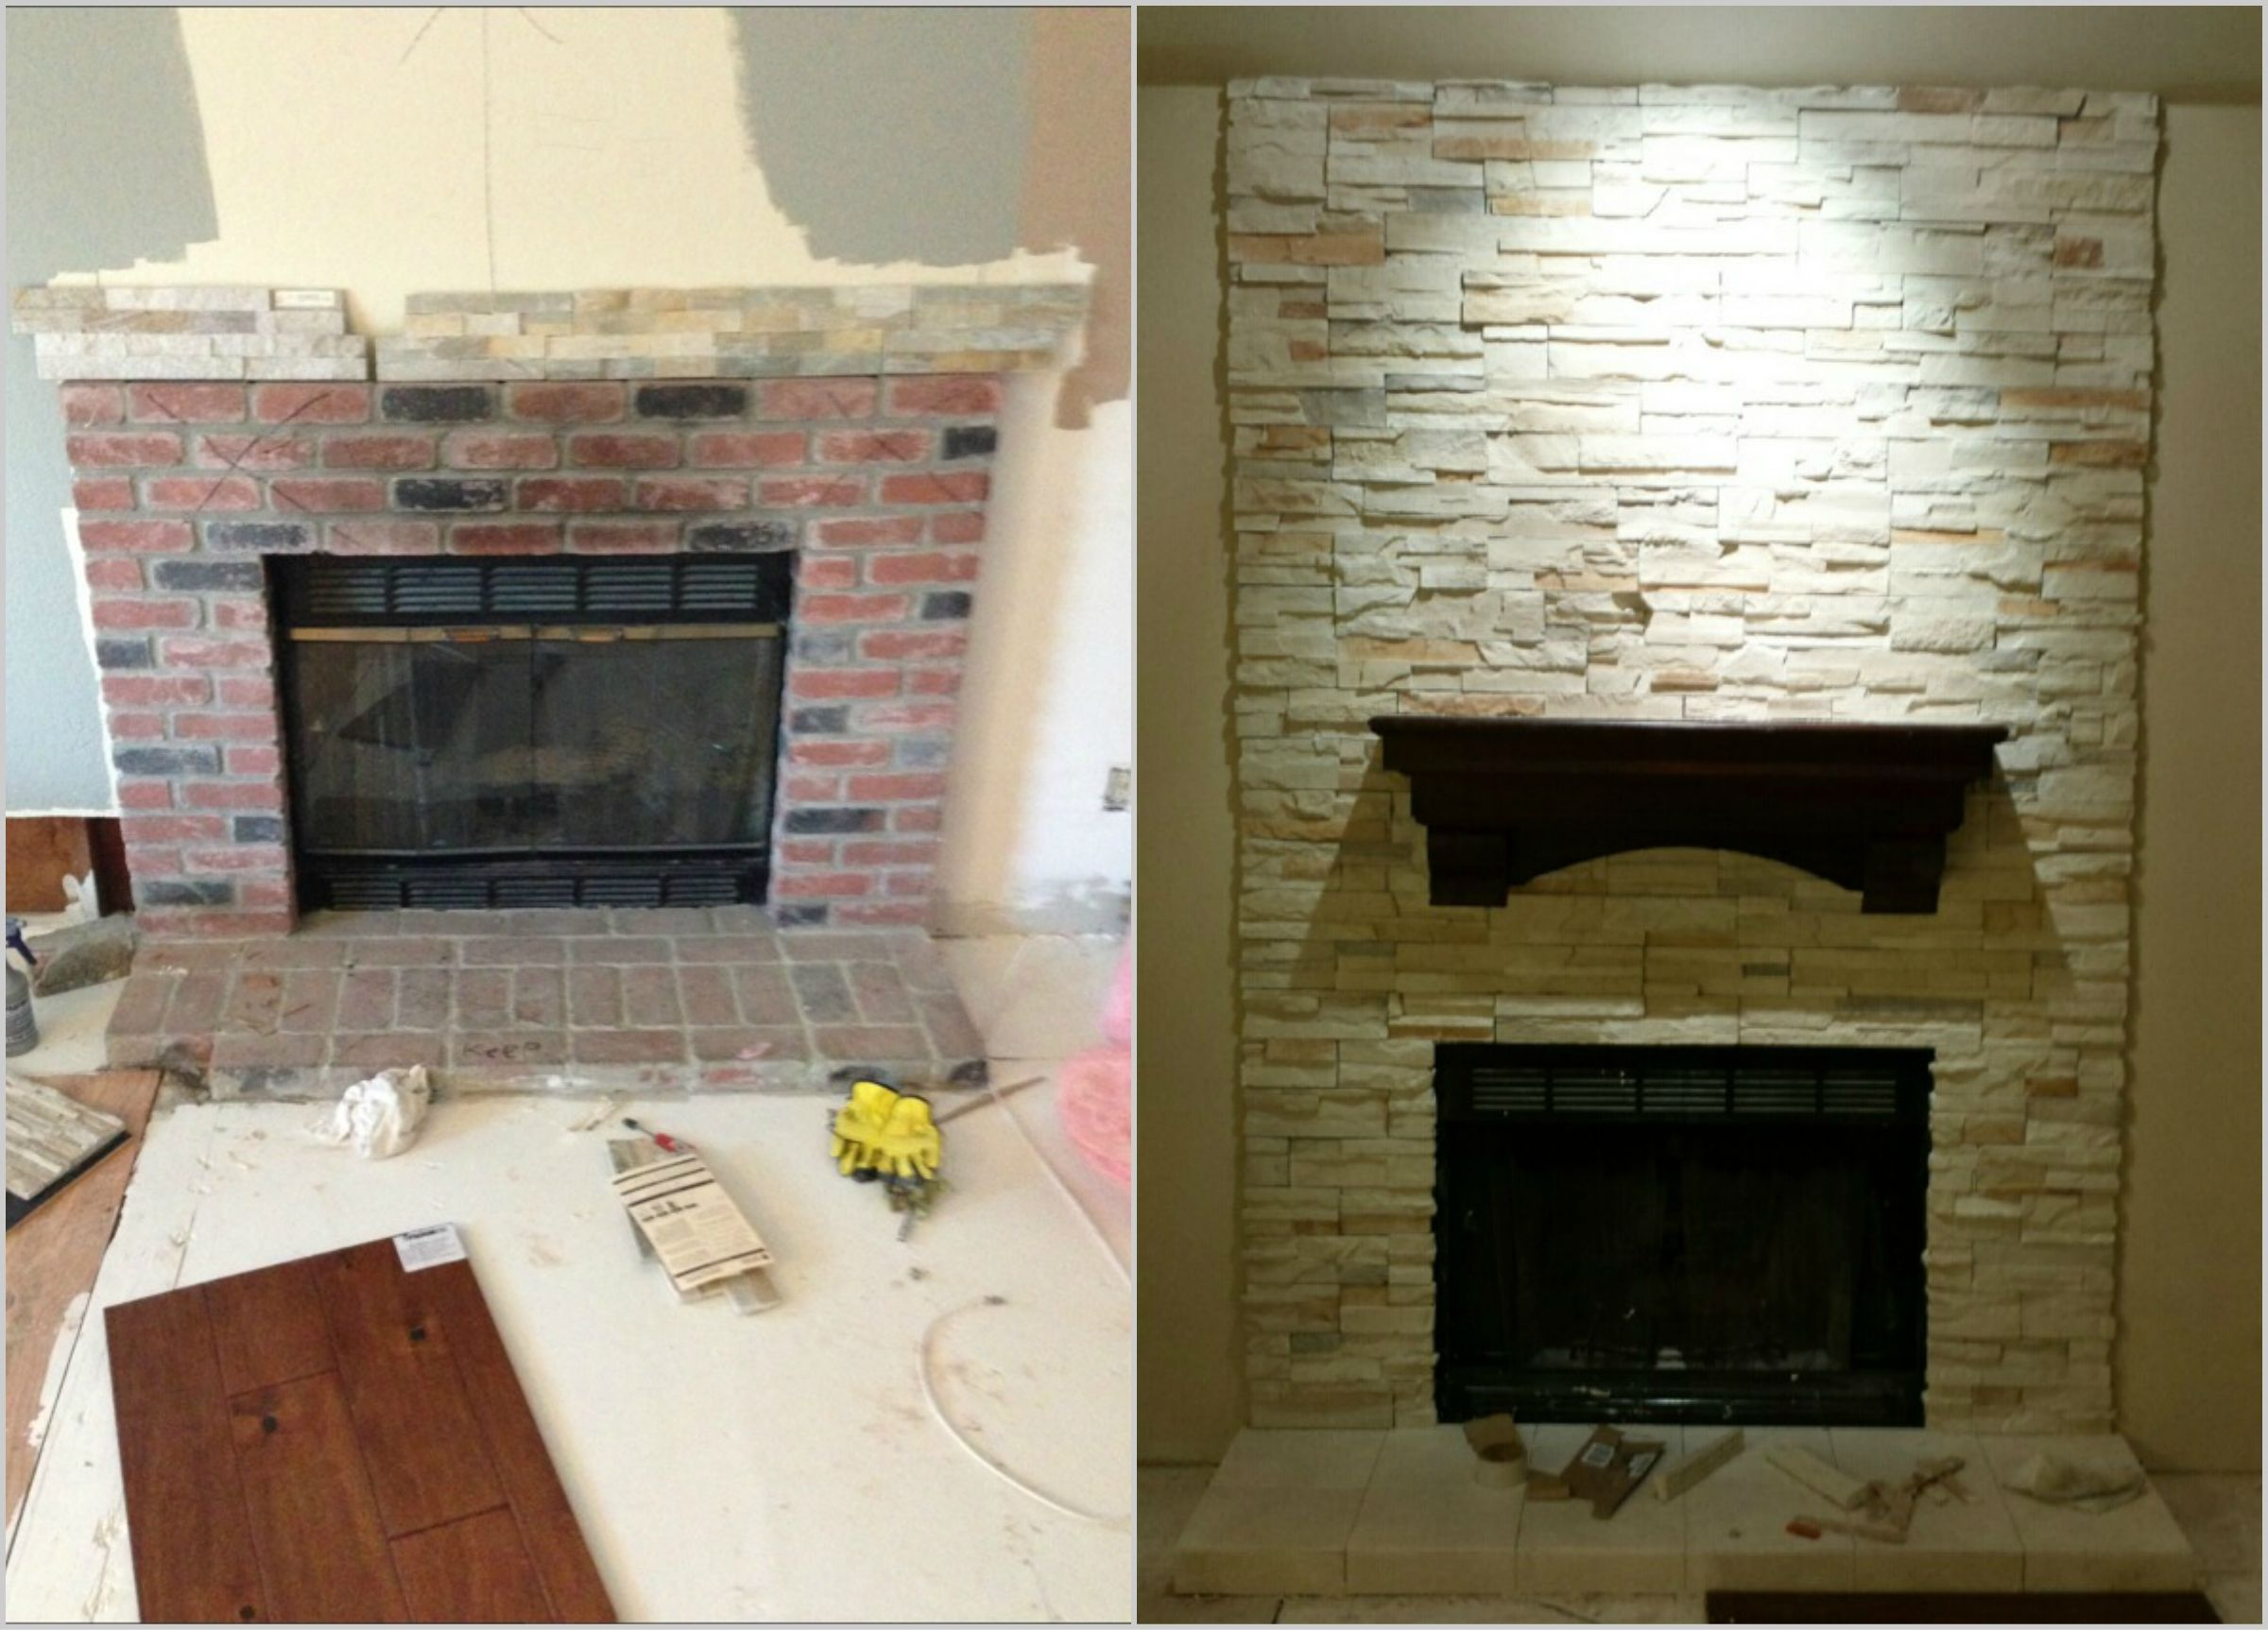 Tiletuesday Features An Awesome Before And After Series Via The